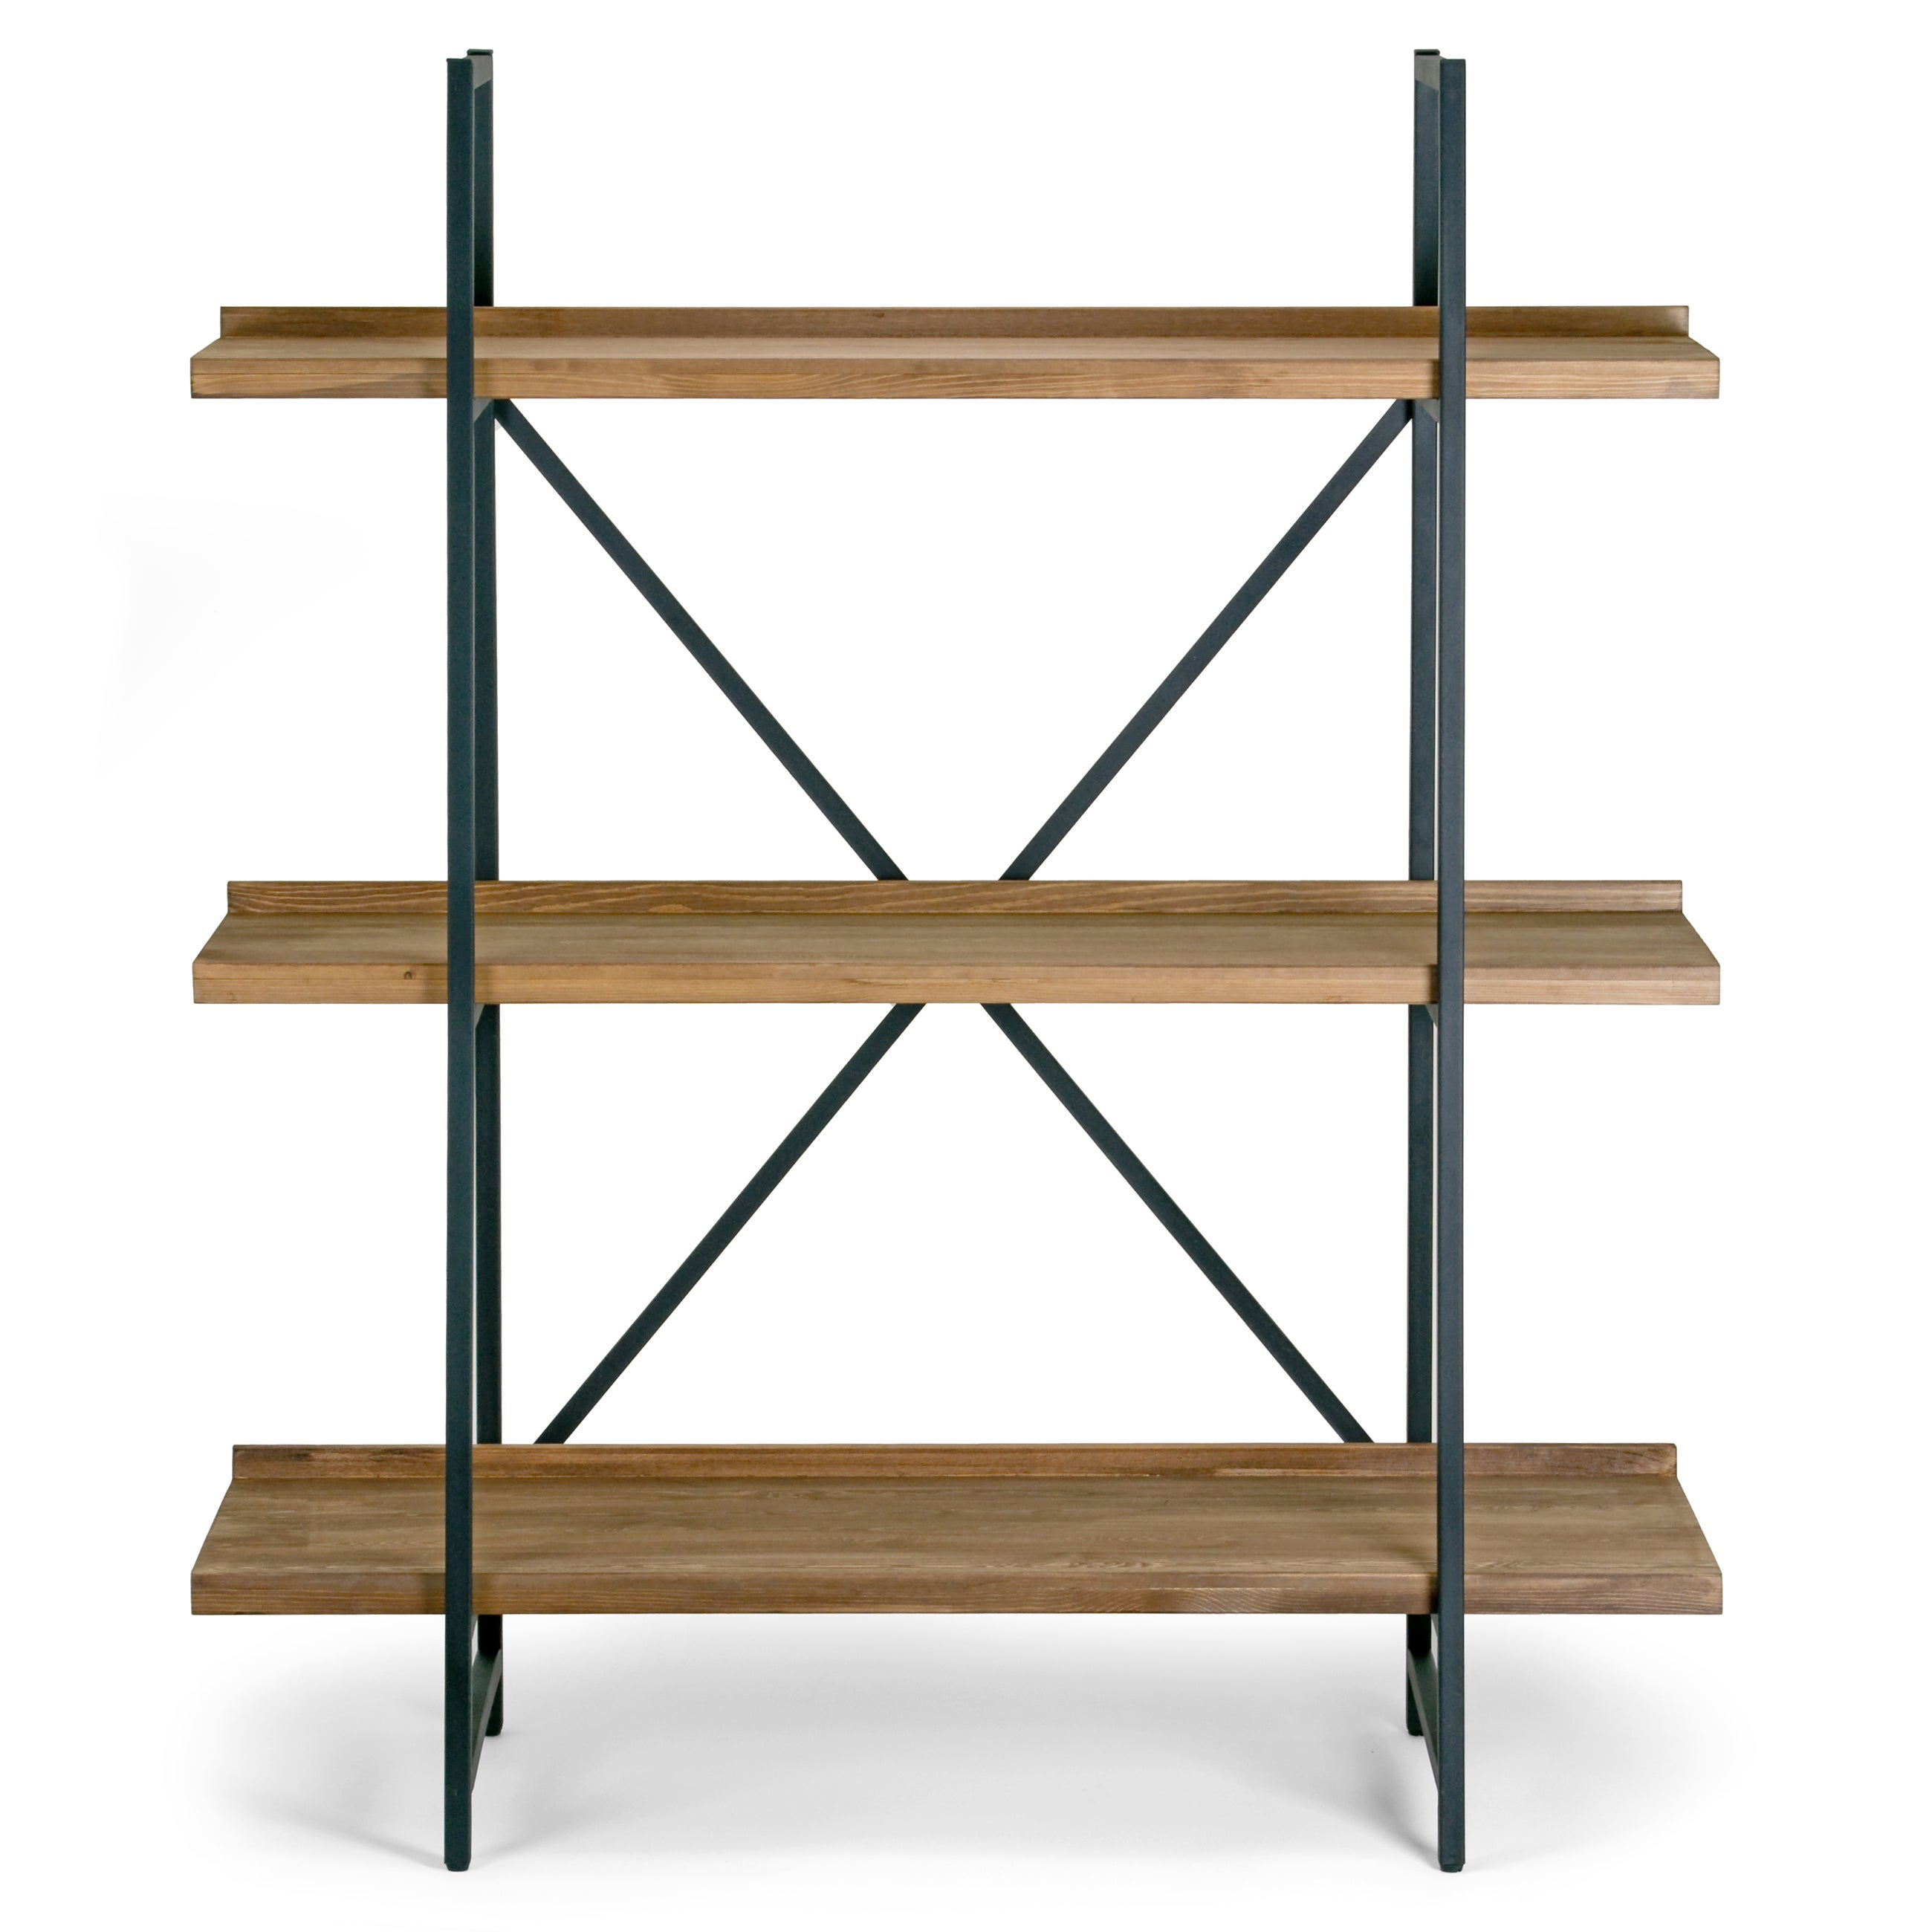 6213449cda6d9 Shop Ailis Brown Pine Wood Metal Frame 56-inch Etagere Bookcase Three-shelf  Media Center - Free Shipping Today - Overstock - 13288404